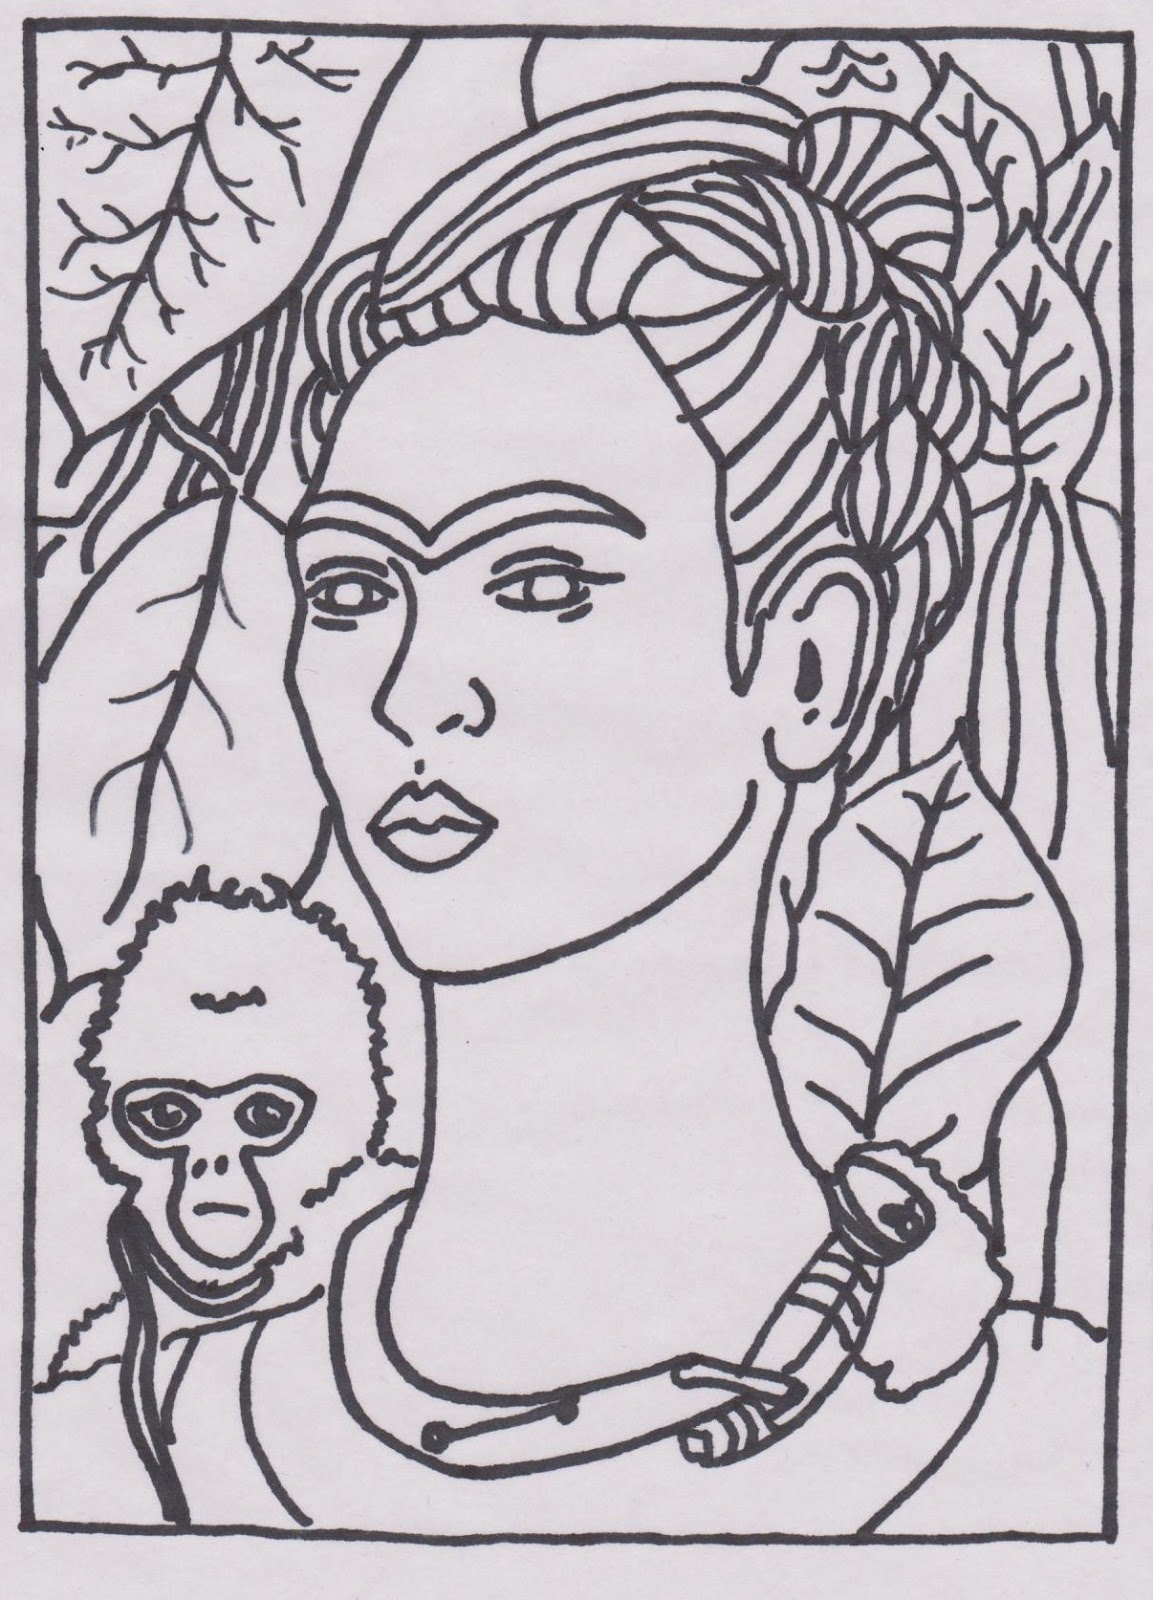 coloring pages artists - photo#10